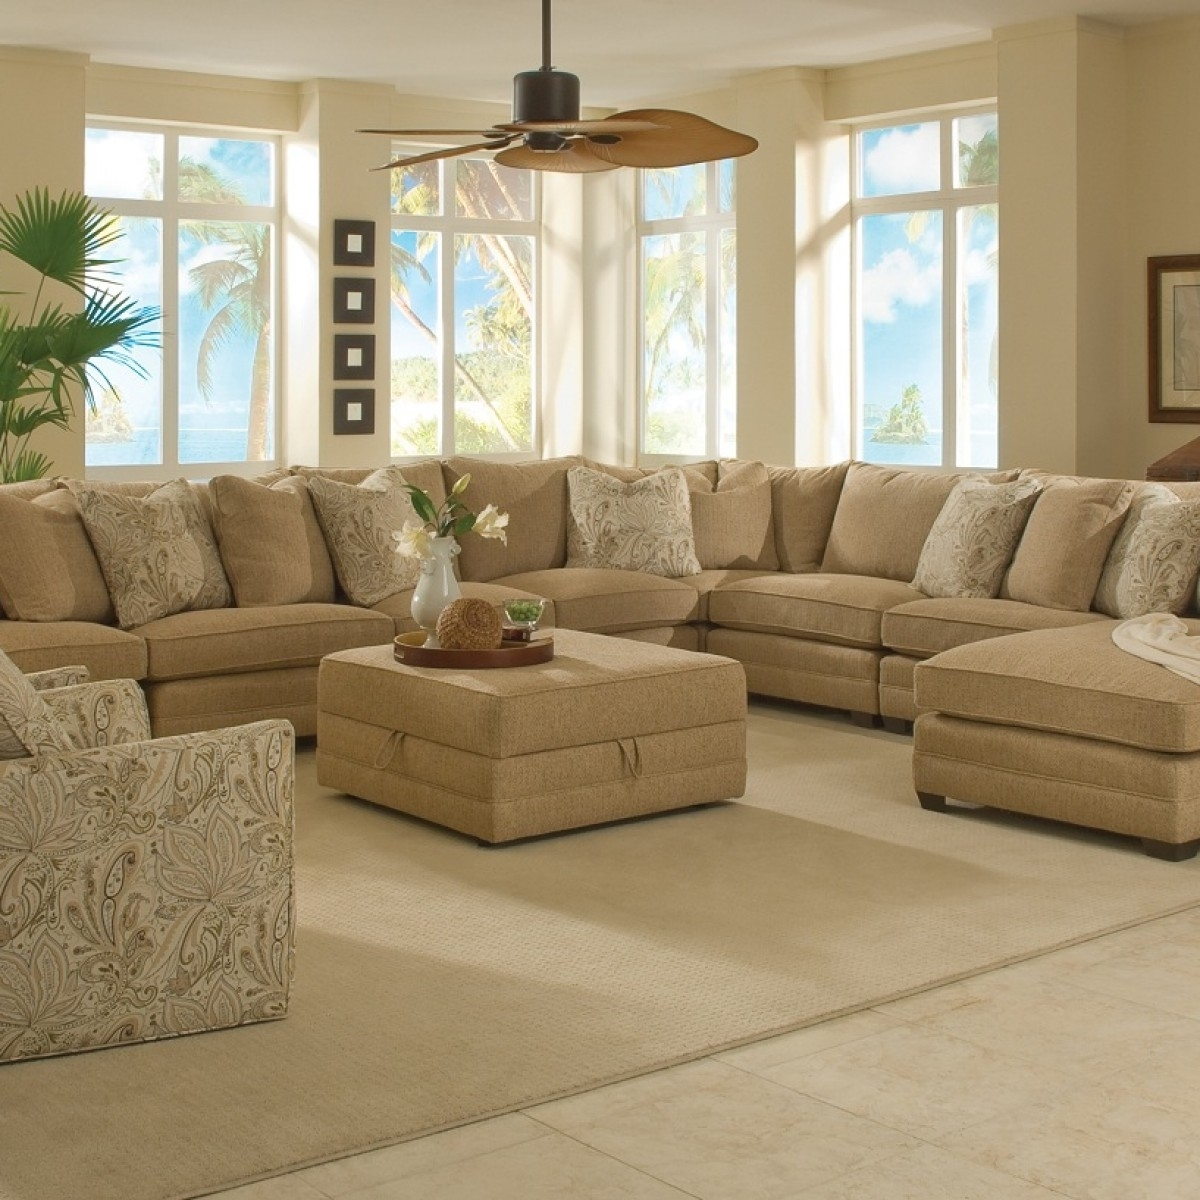 Factors To Consider Before Buying An Extra Large Sectional Sofa intended for Large Sectional Sofas (Image 4 of 10)